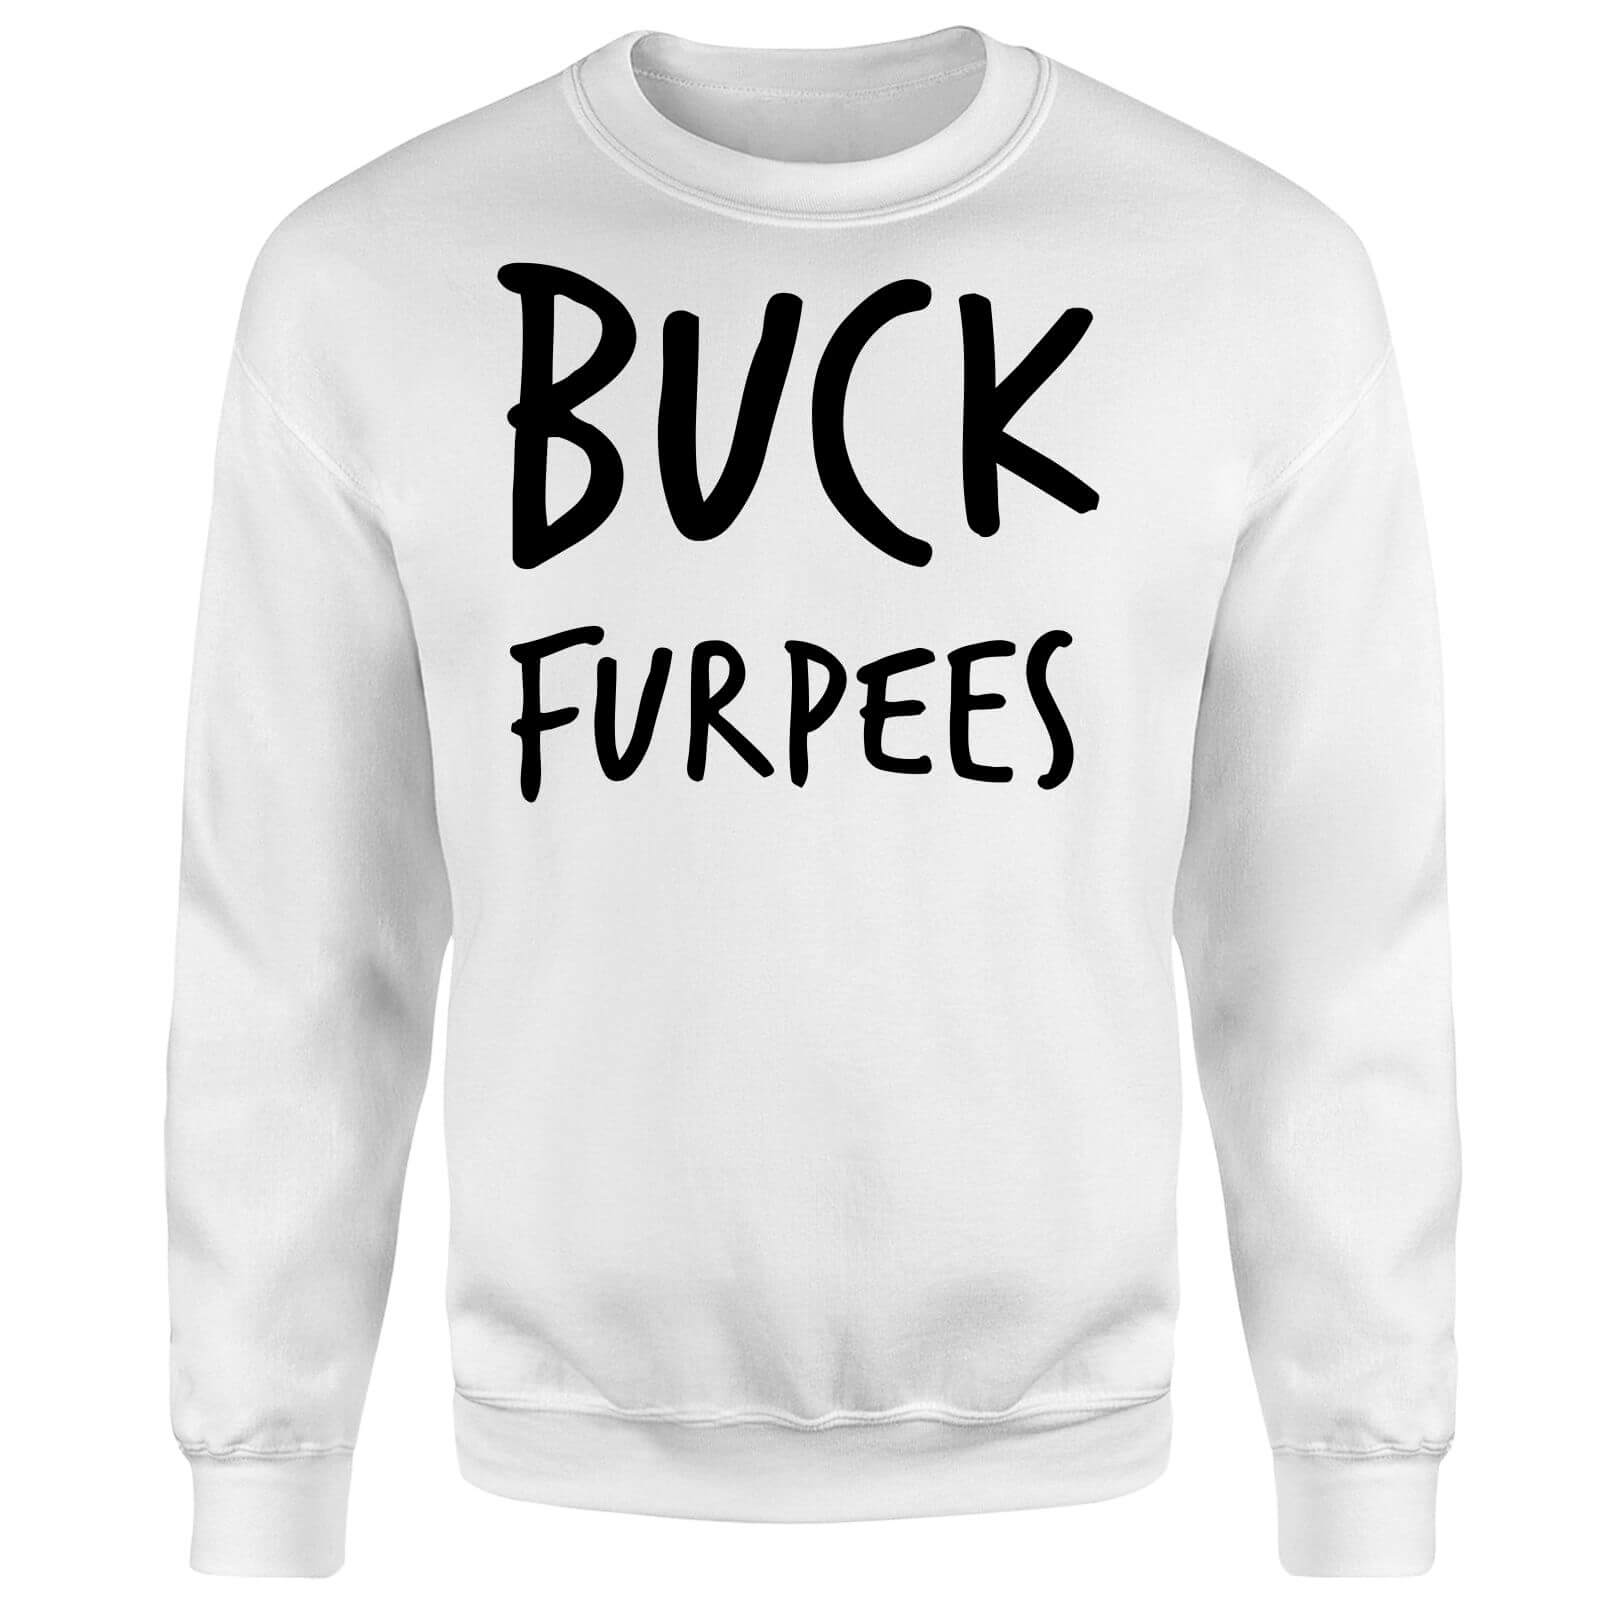 Buck Furpees Sweatshirt - White